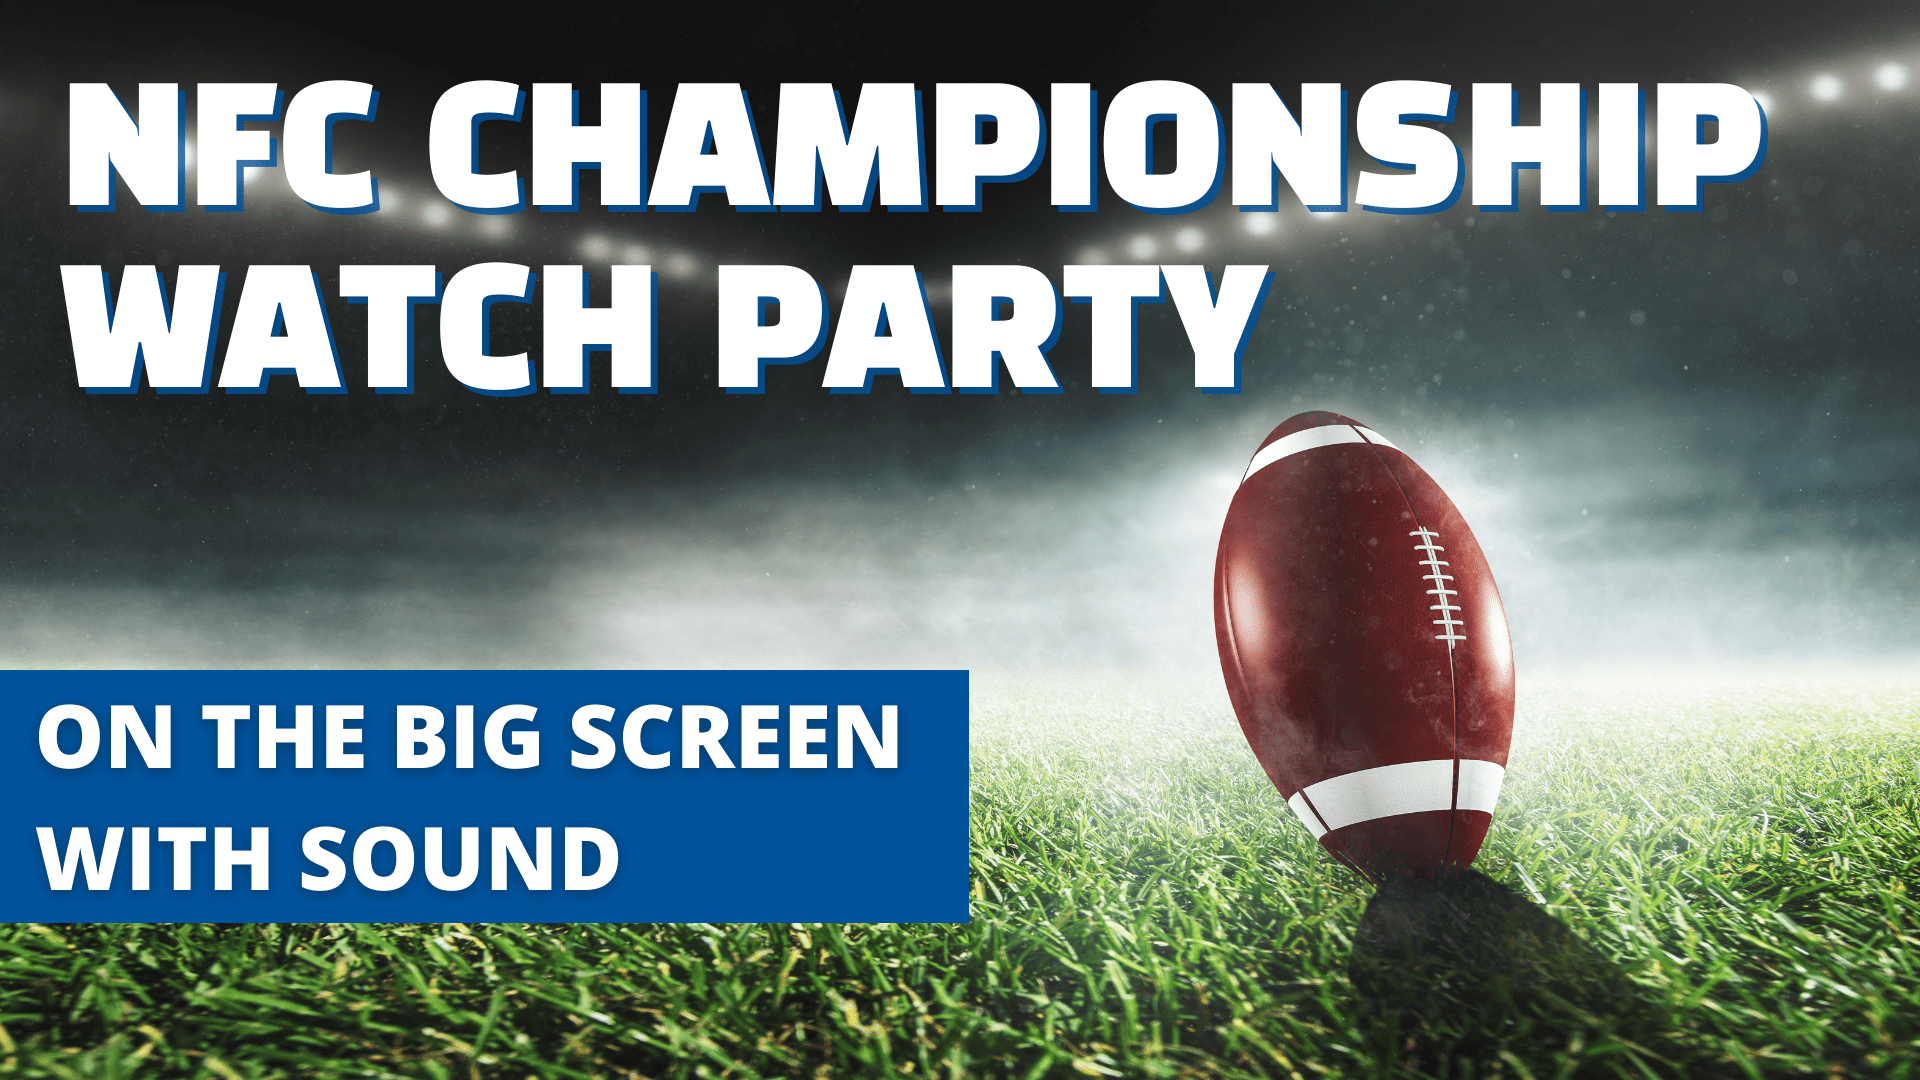 Promo image of NFC Championship Watch Party